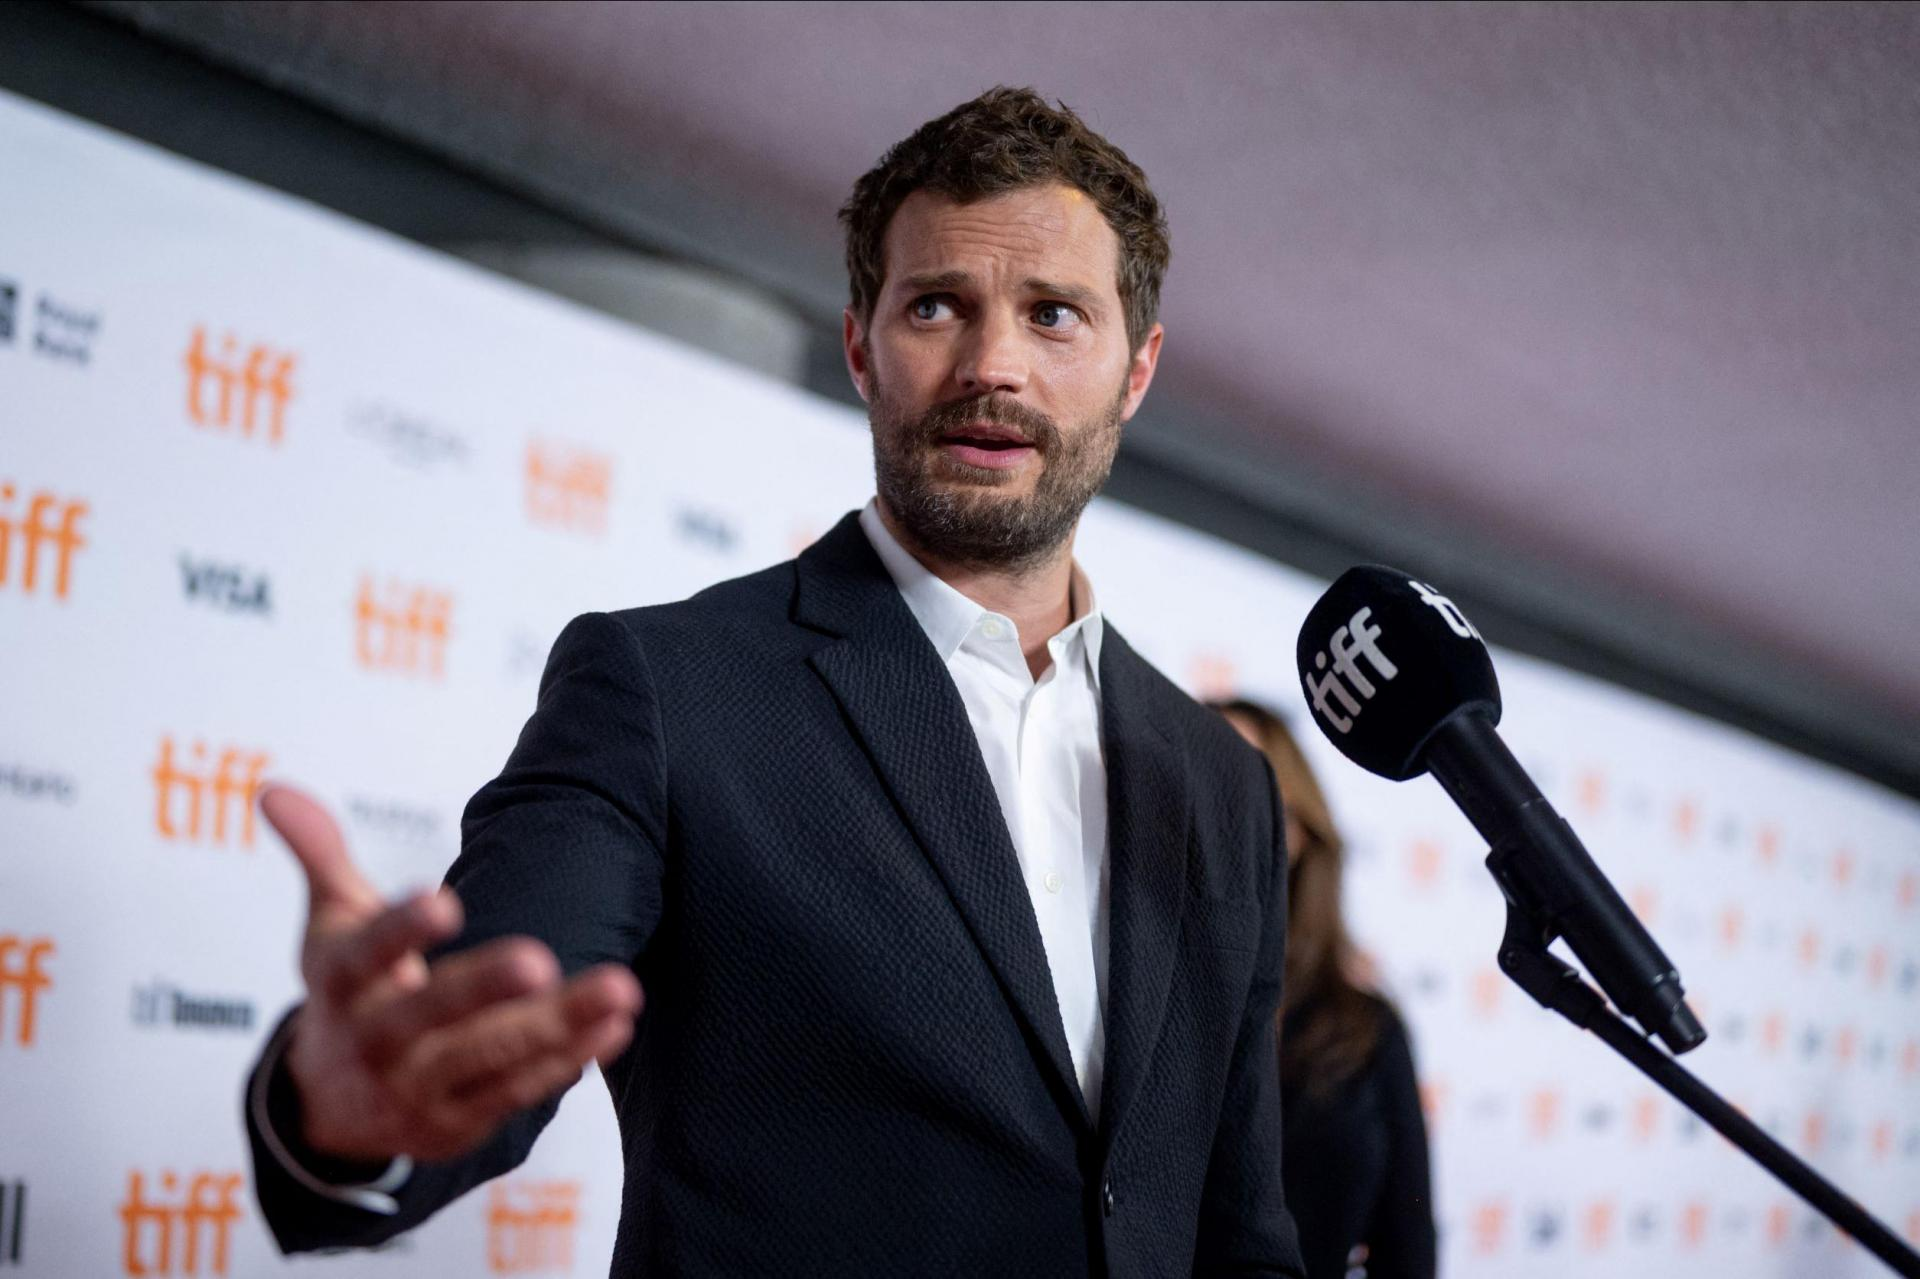 Jamie Dornan attends the 'Belfast' Premiere. Photo: Emma Mcintyre/Getty Images North America/Getty Images via AFP